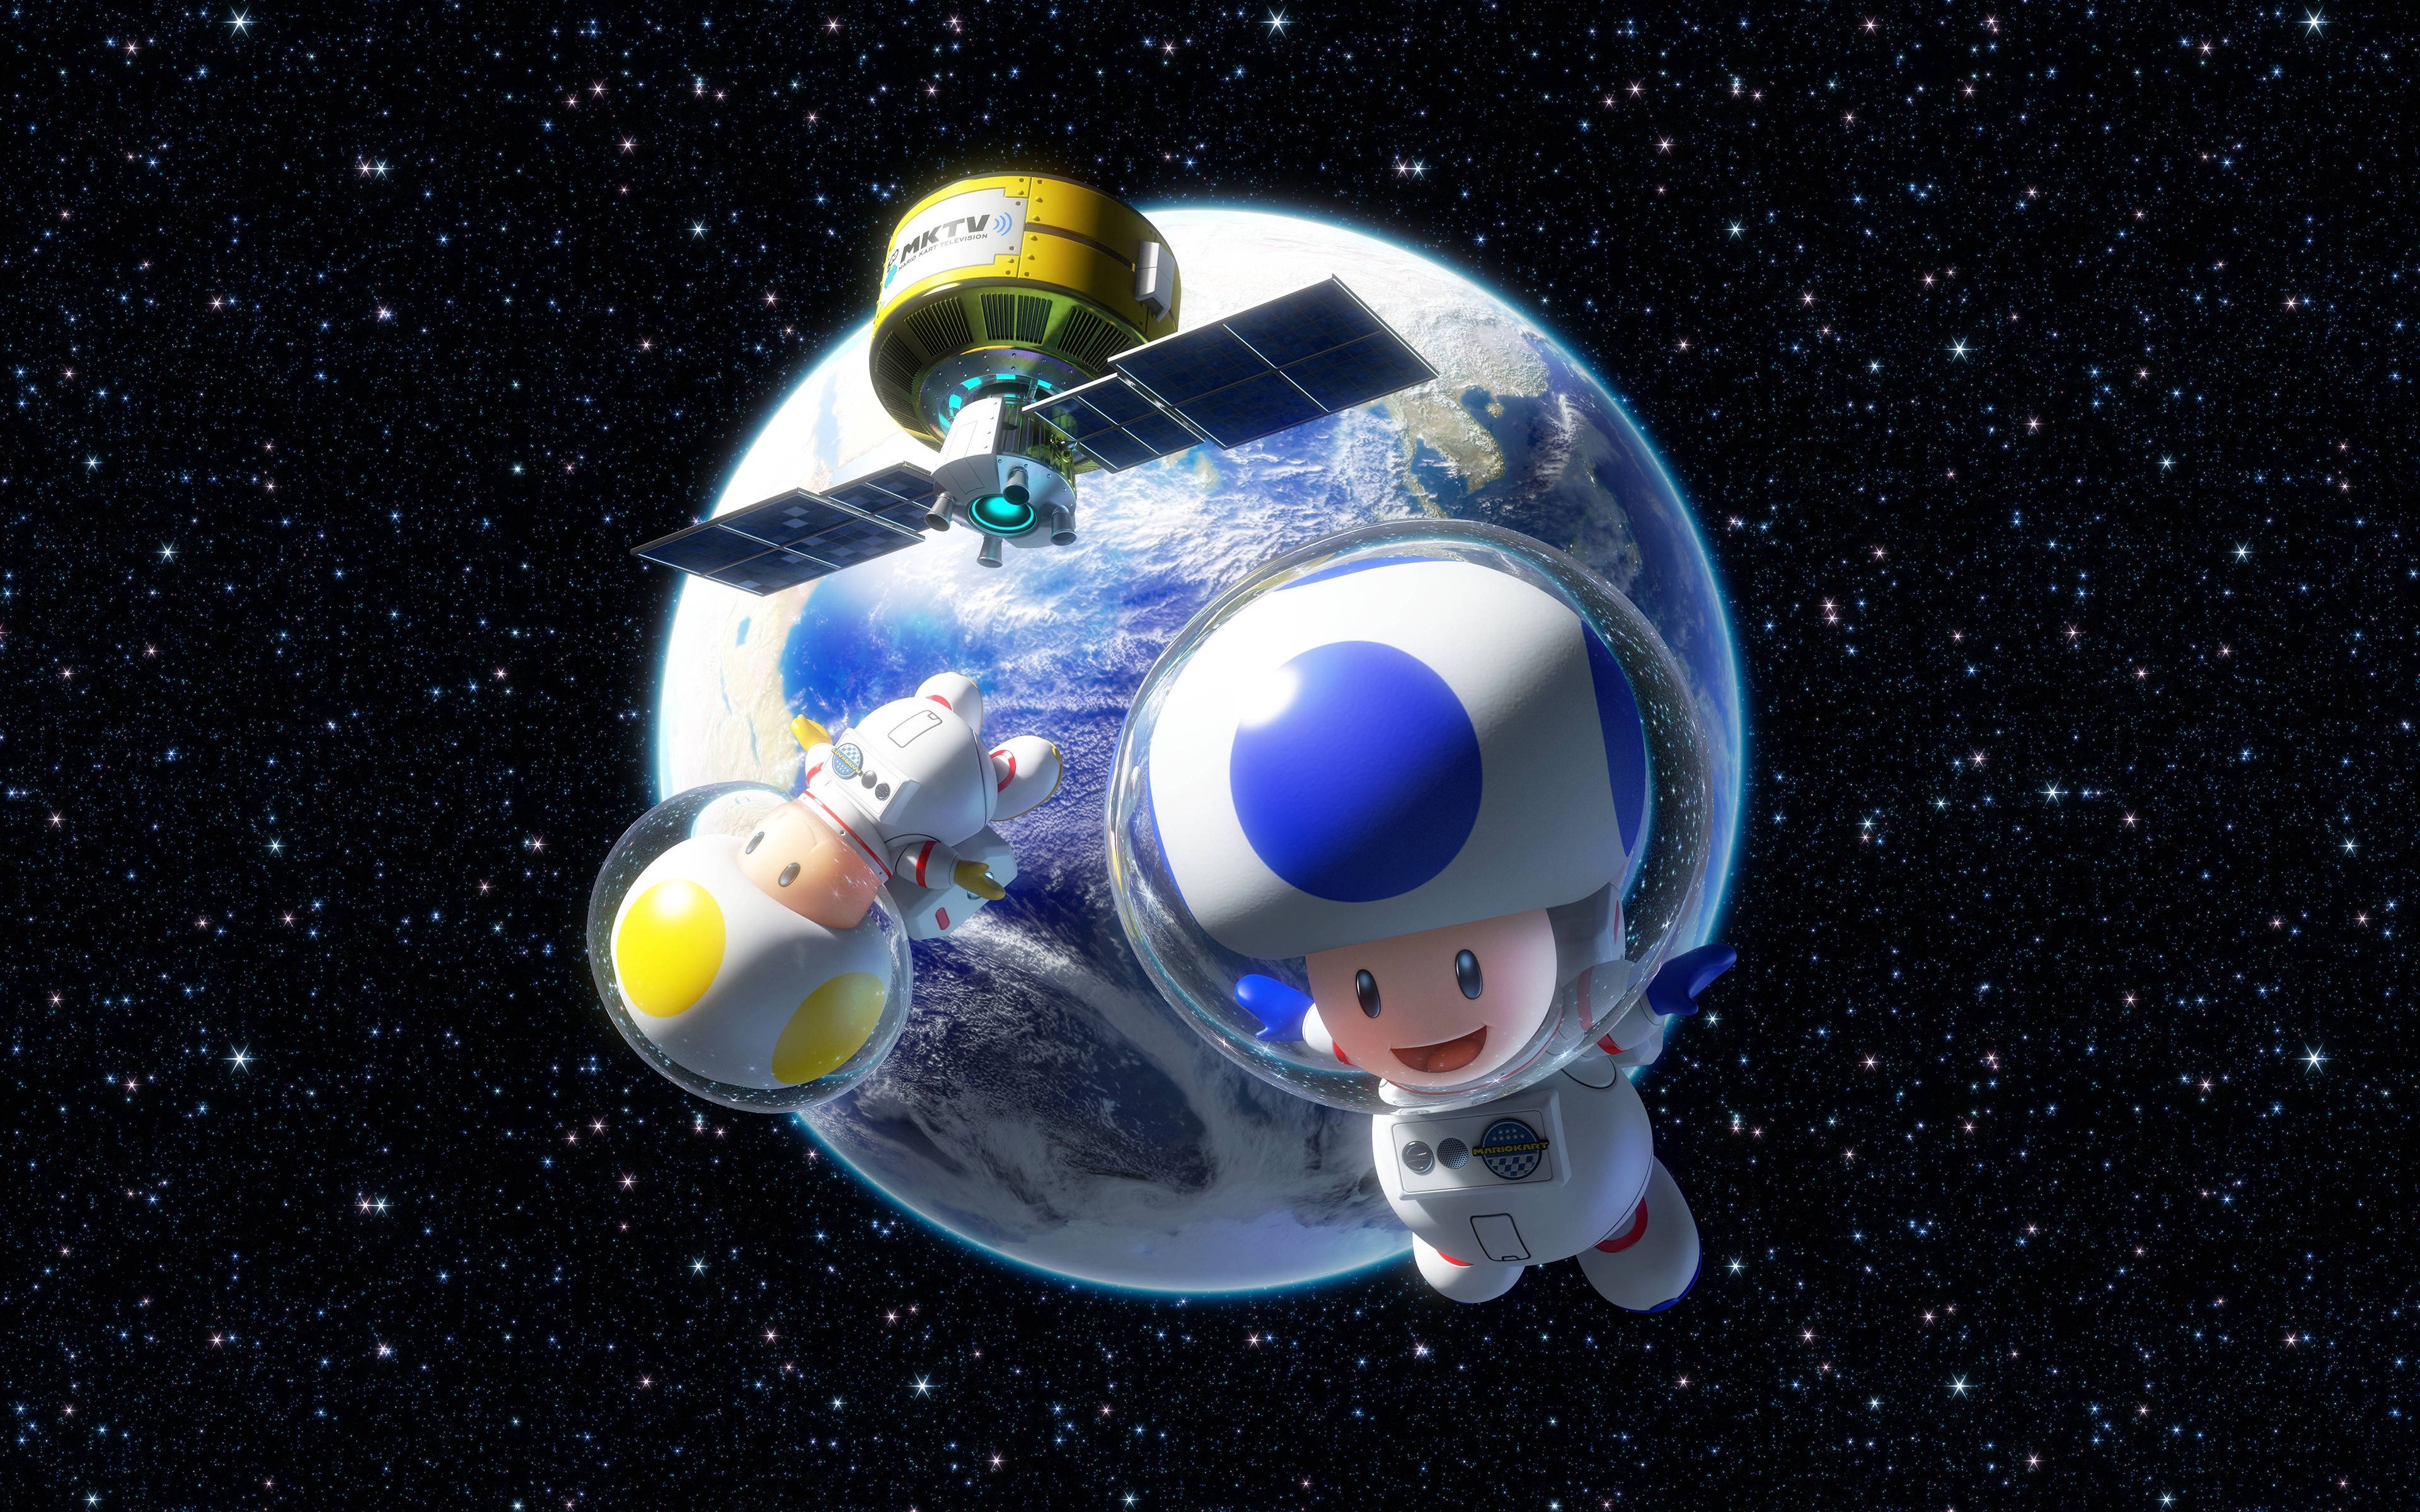 General 3840x2400 Toad (character) space video games Mario Kart 8 Nintendo astronaut Earth Mario Kart